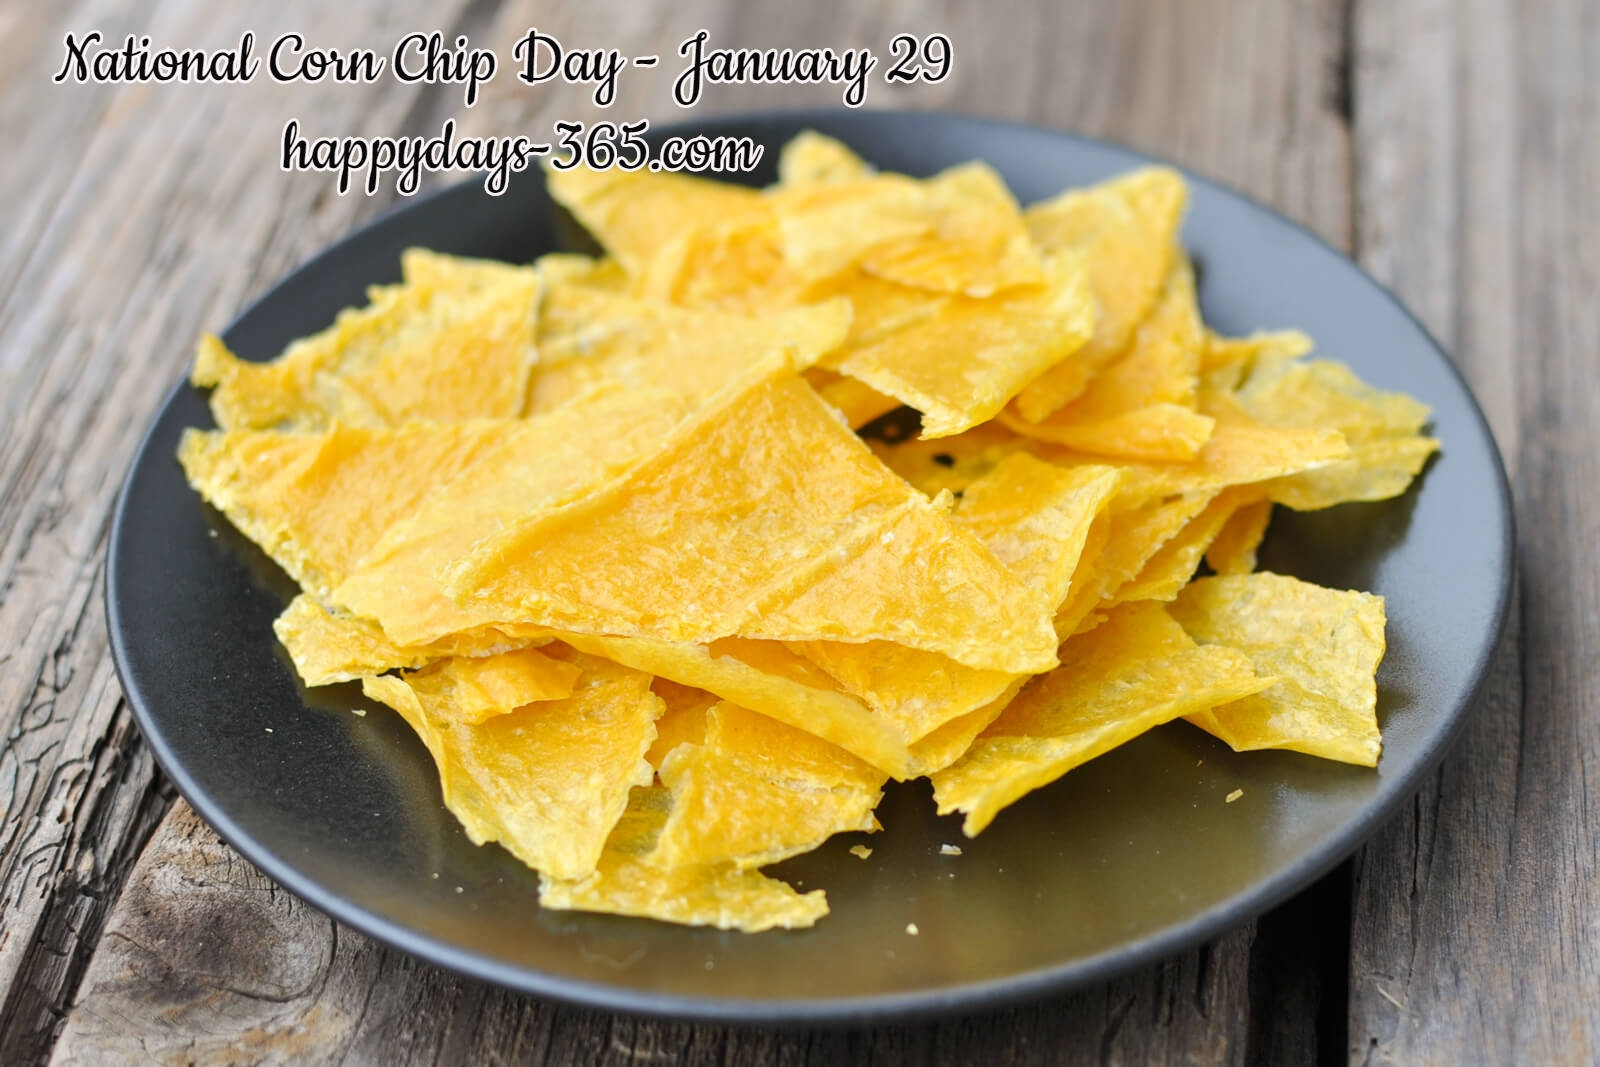 National Corn Chip Day January 29 2019 Happy Days 365